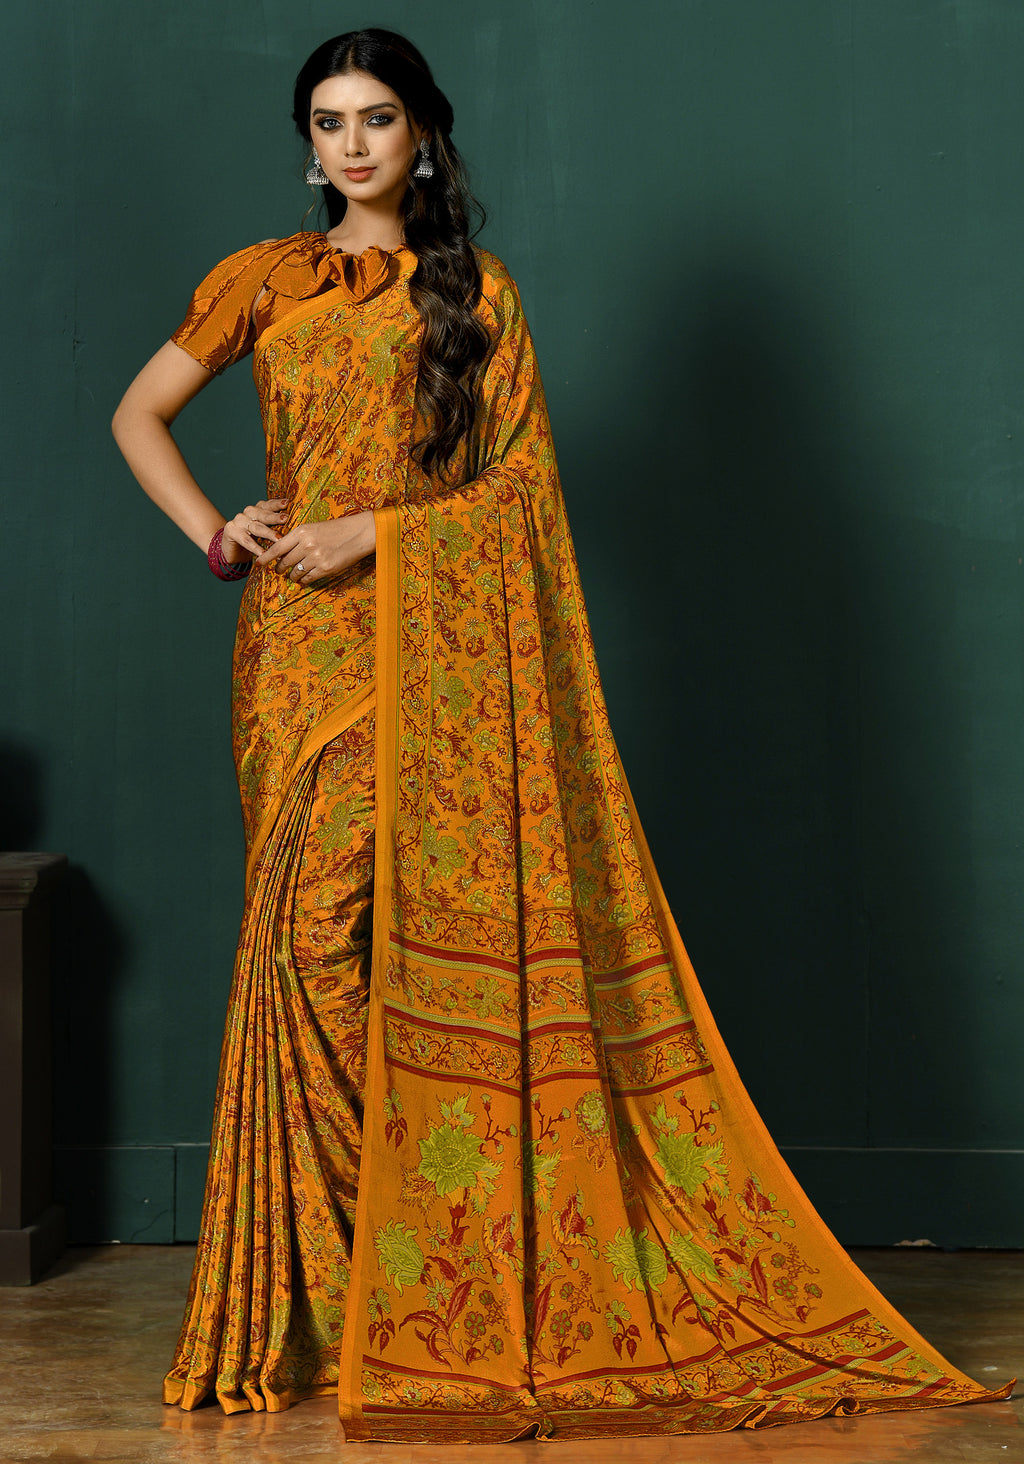 Mustard Yellow Color Crepe  Digital Print Kitty Party Sarees NYF-8135